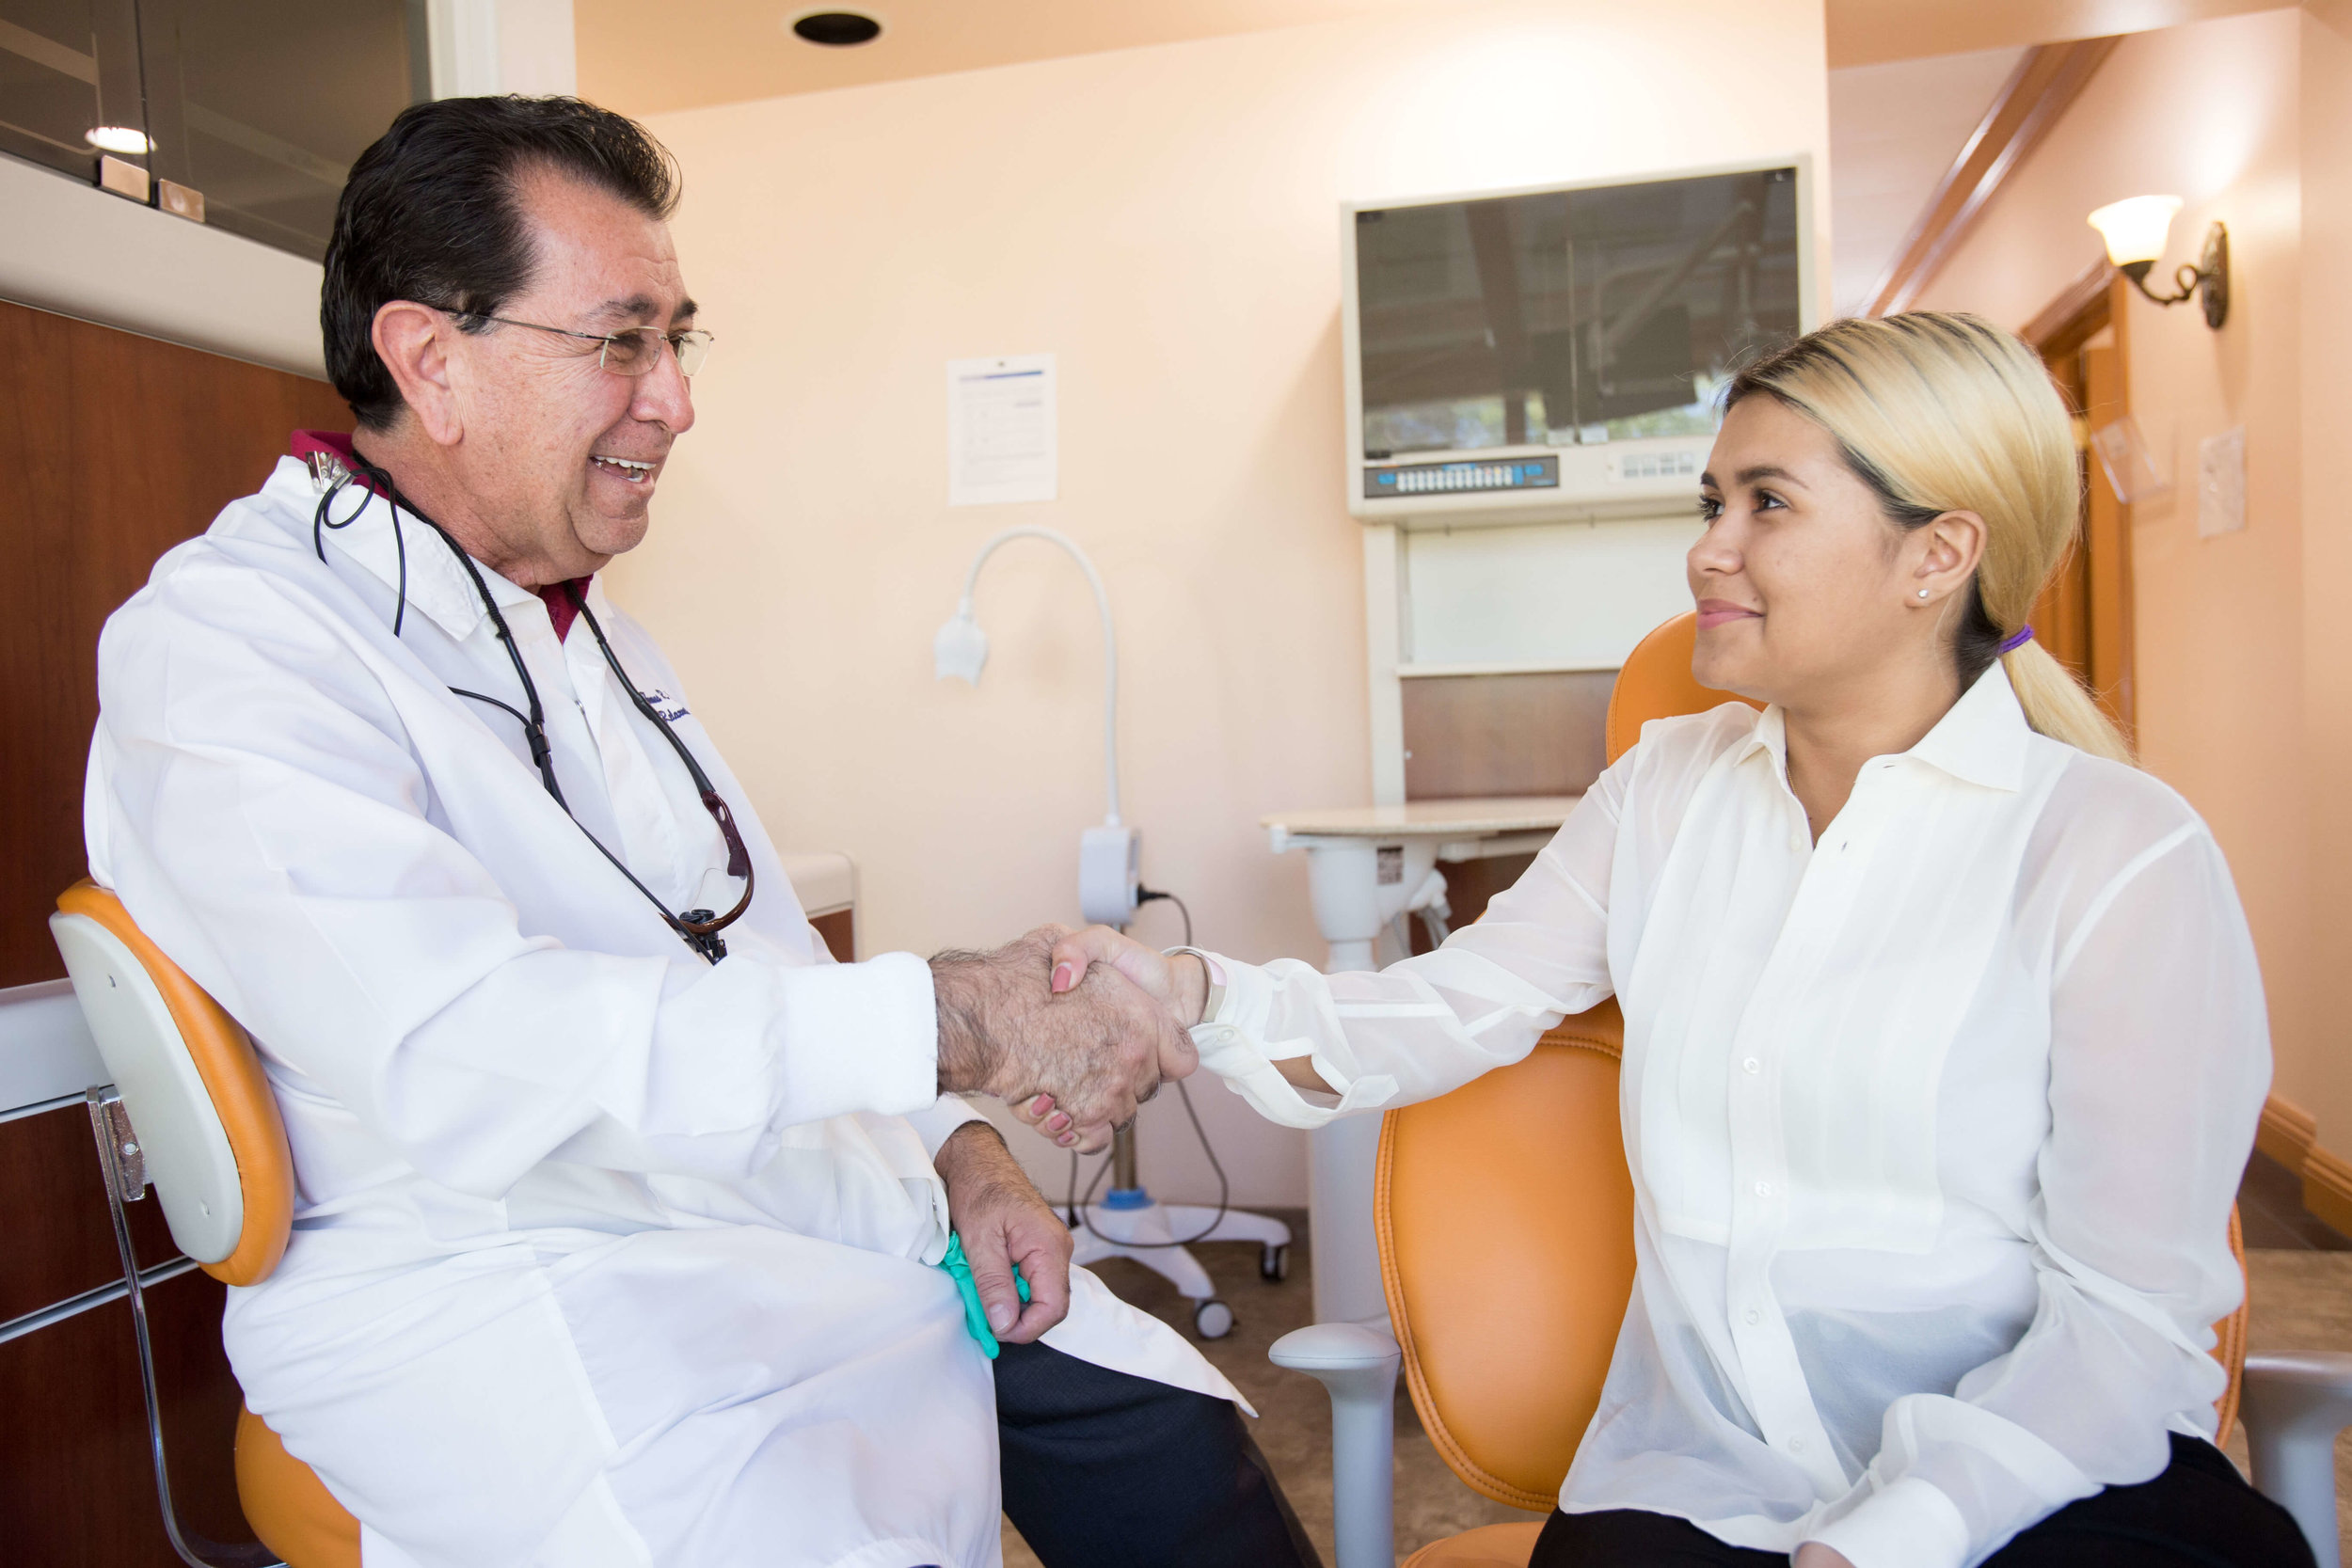 Watch videos from Town Center Dentistry in Rancho Bernardo about our dental implant specialists, Dr. Gonzales and Dr. Driver. Learn about our dental specialists in San Diego.